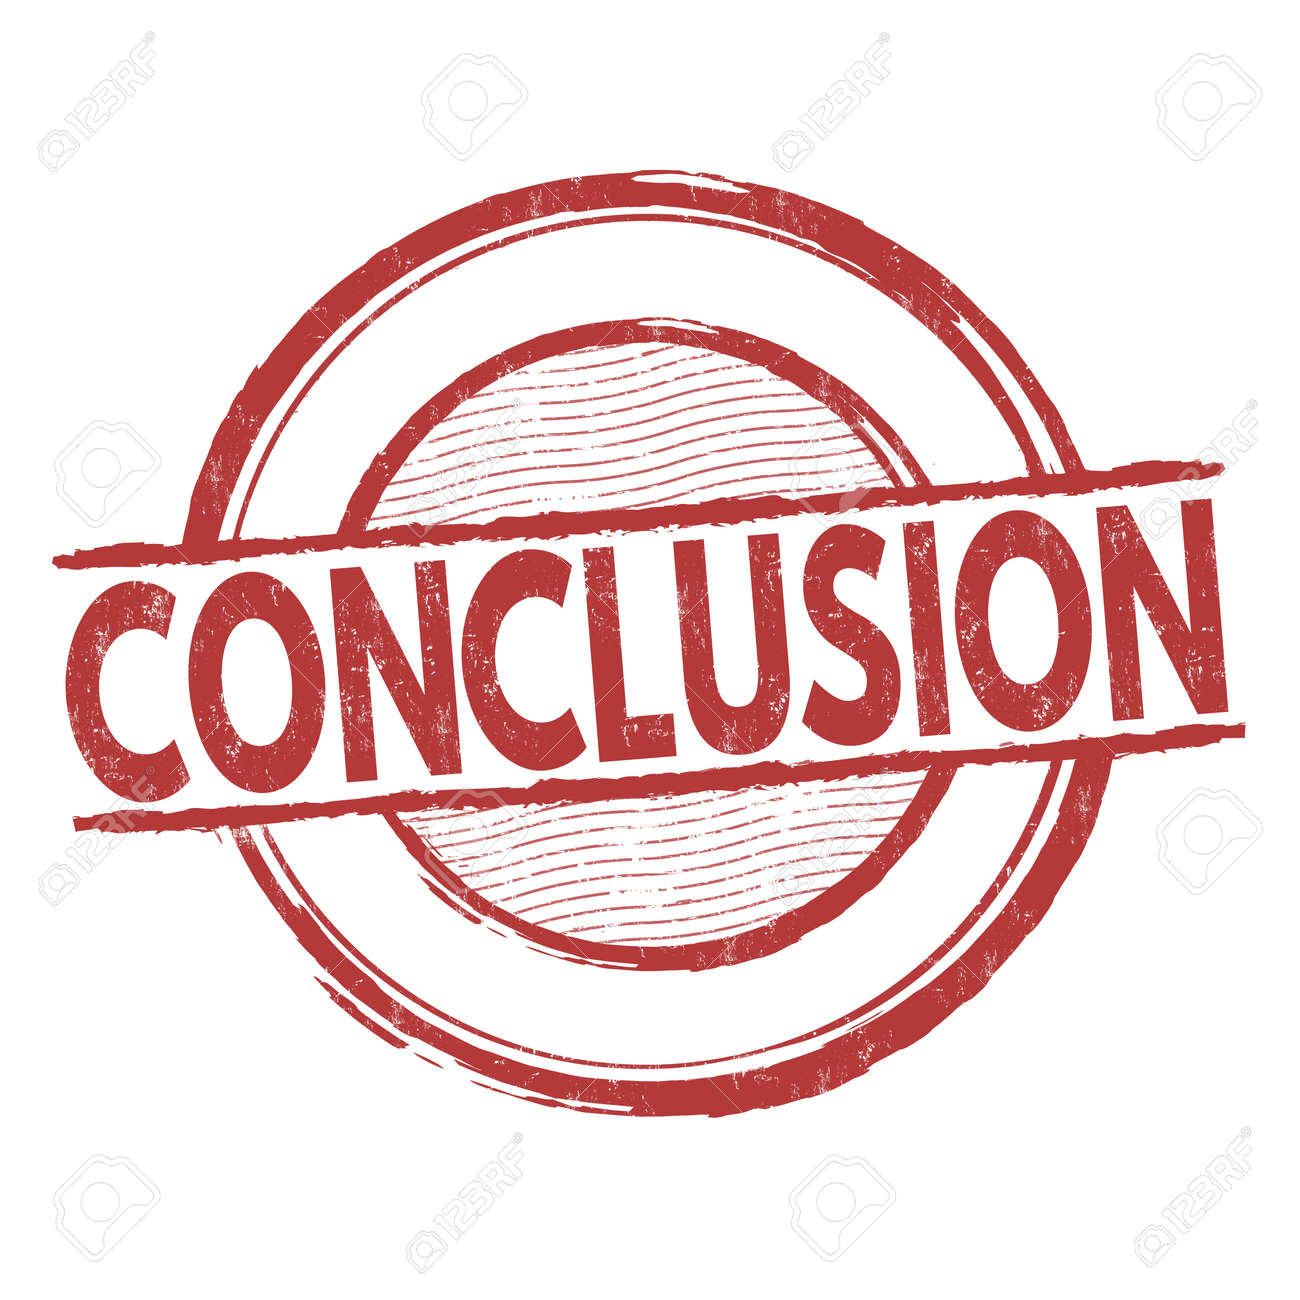 conclusion grunge rubber stamp on white background vector